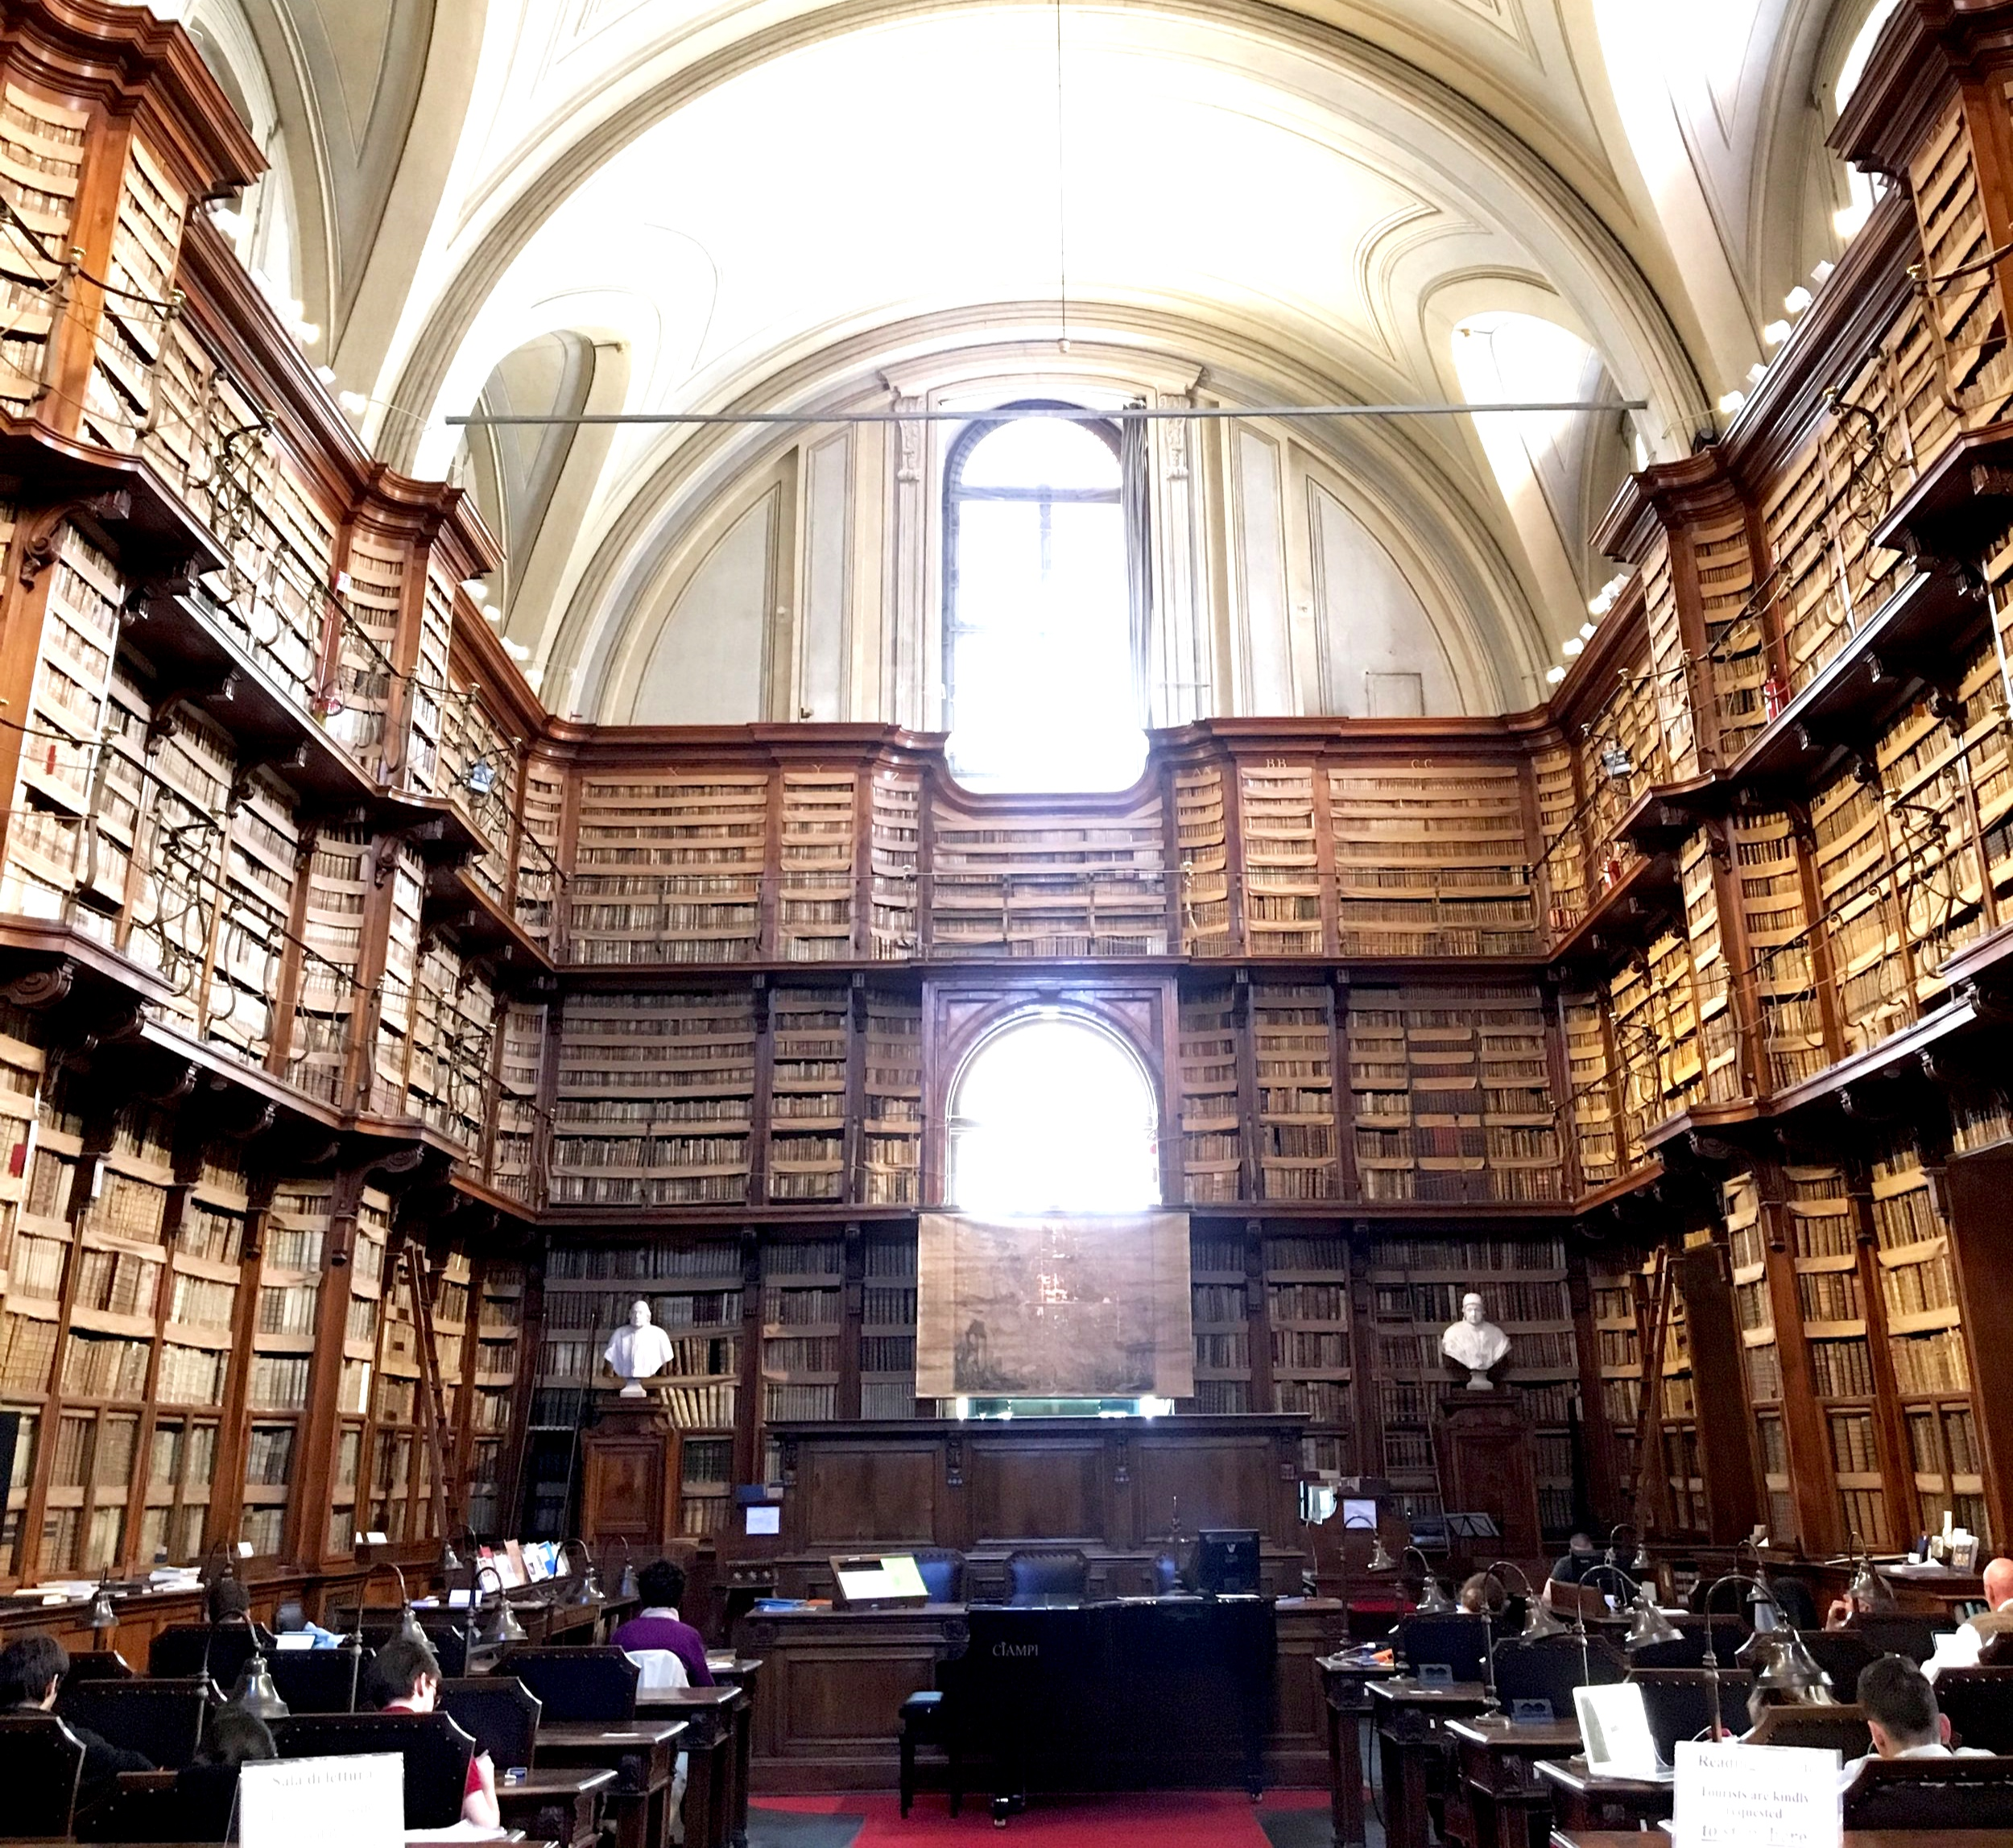 Biblioteca Angelica in Rome, Italy. Photo cred: YPA NYC